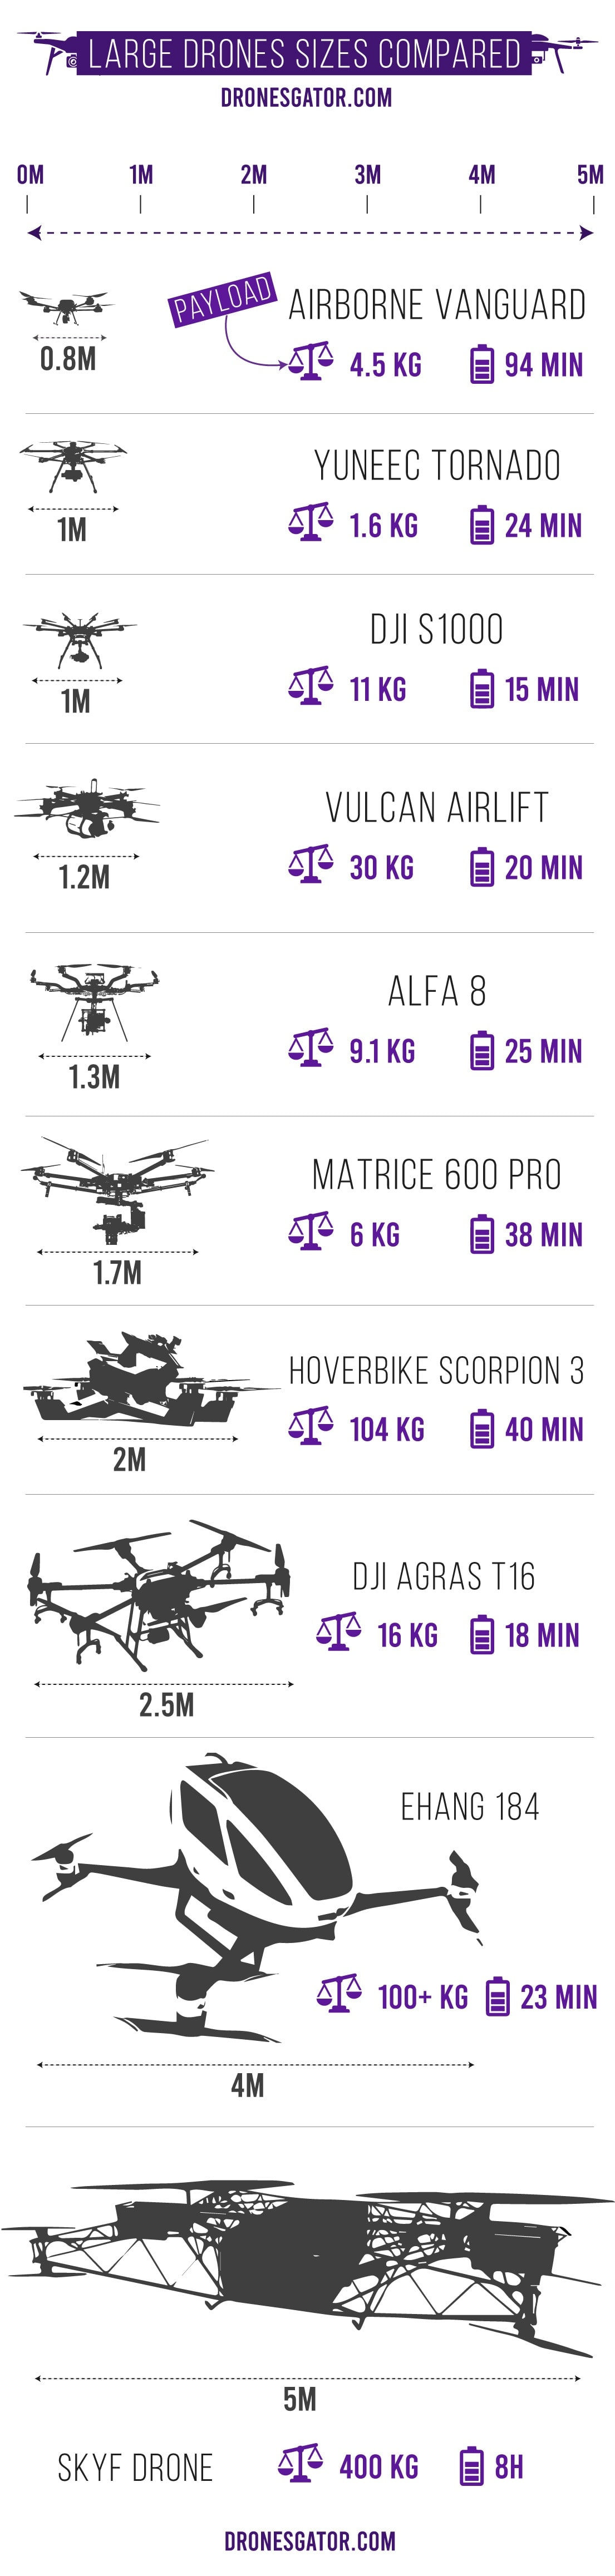 large drones sizes comparison infographic and payload capacity